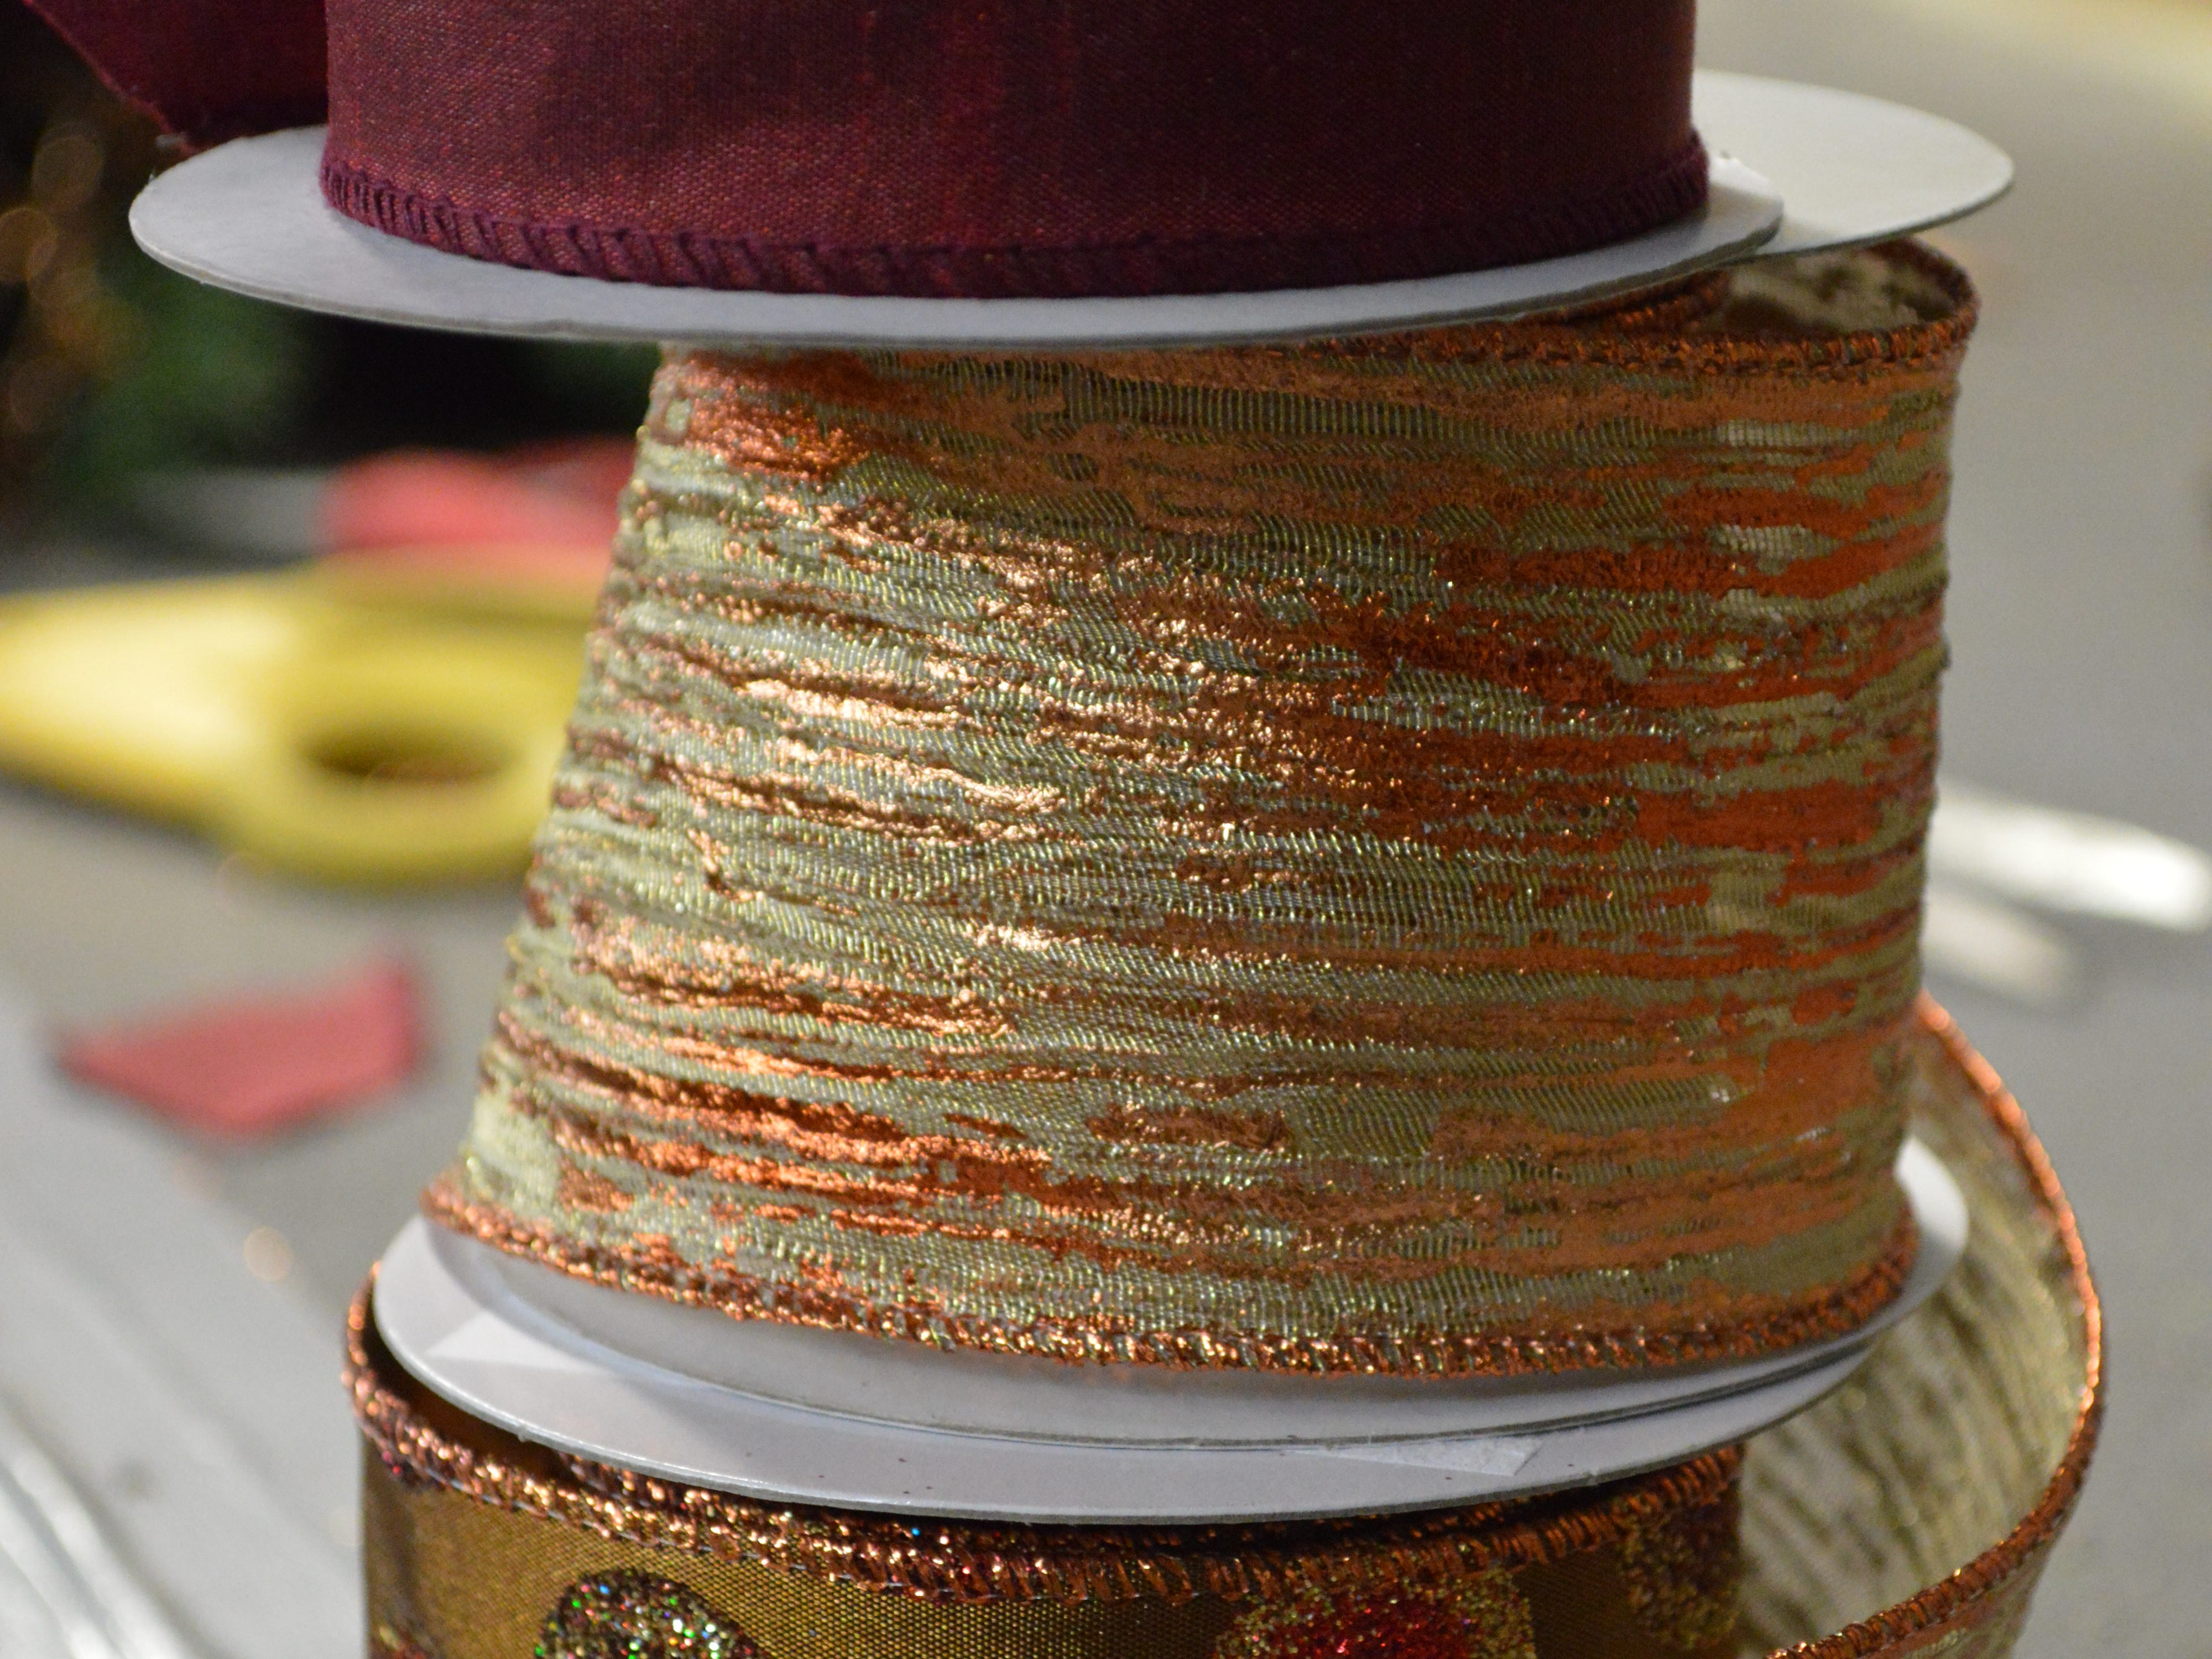 Grob said to use multiple types of ribbon for texture and layers of color.